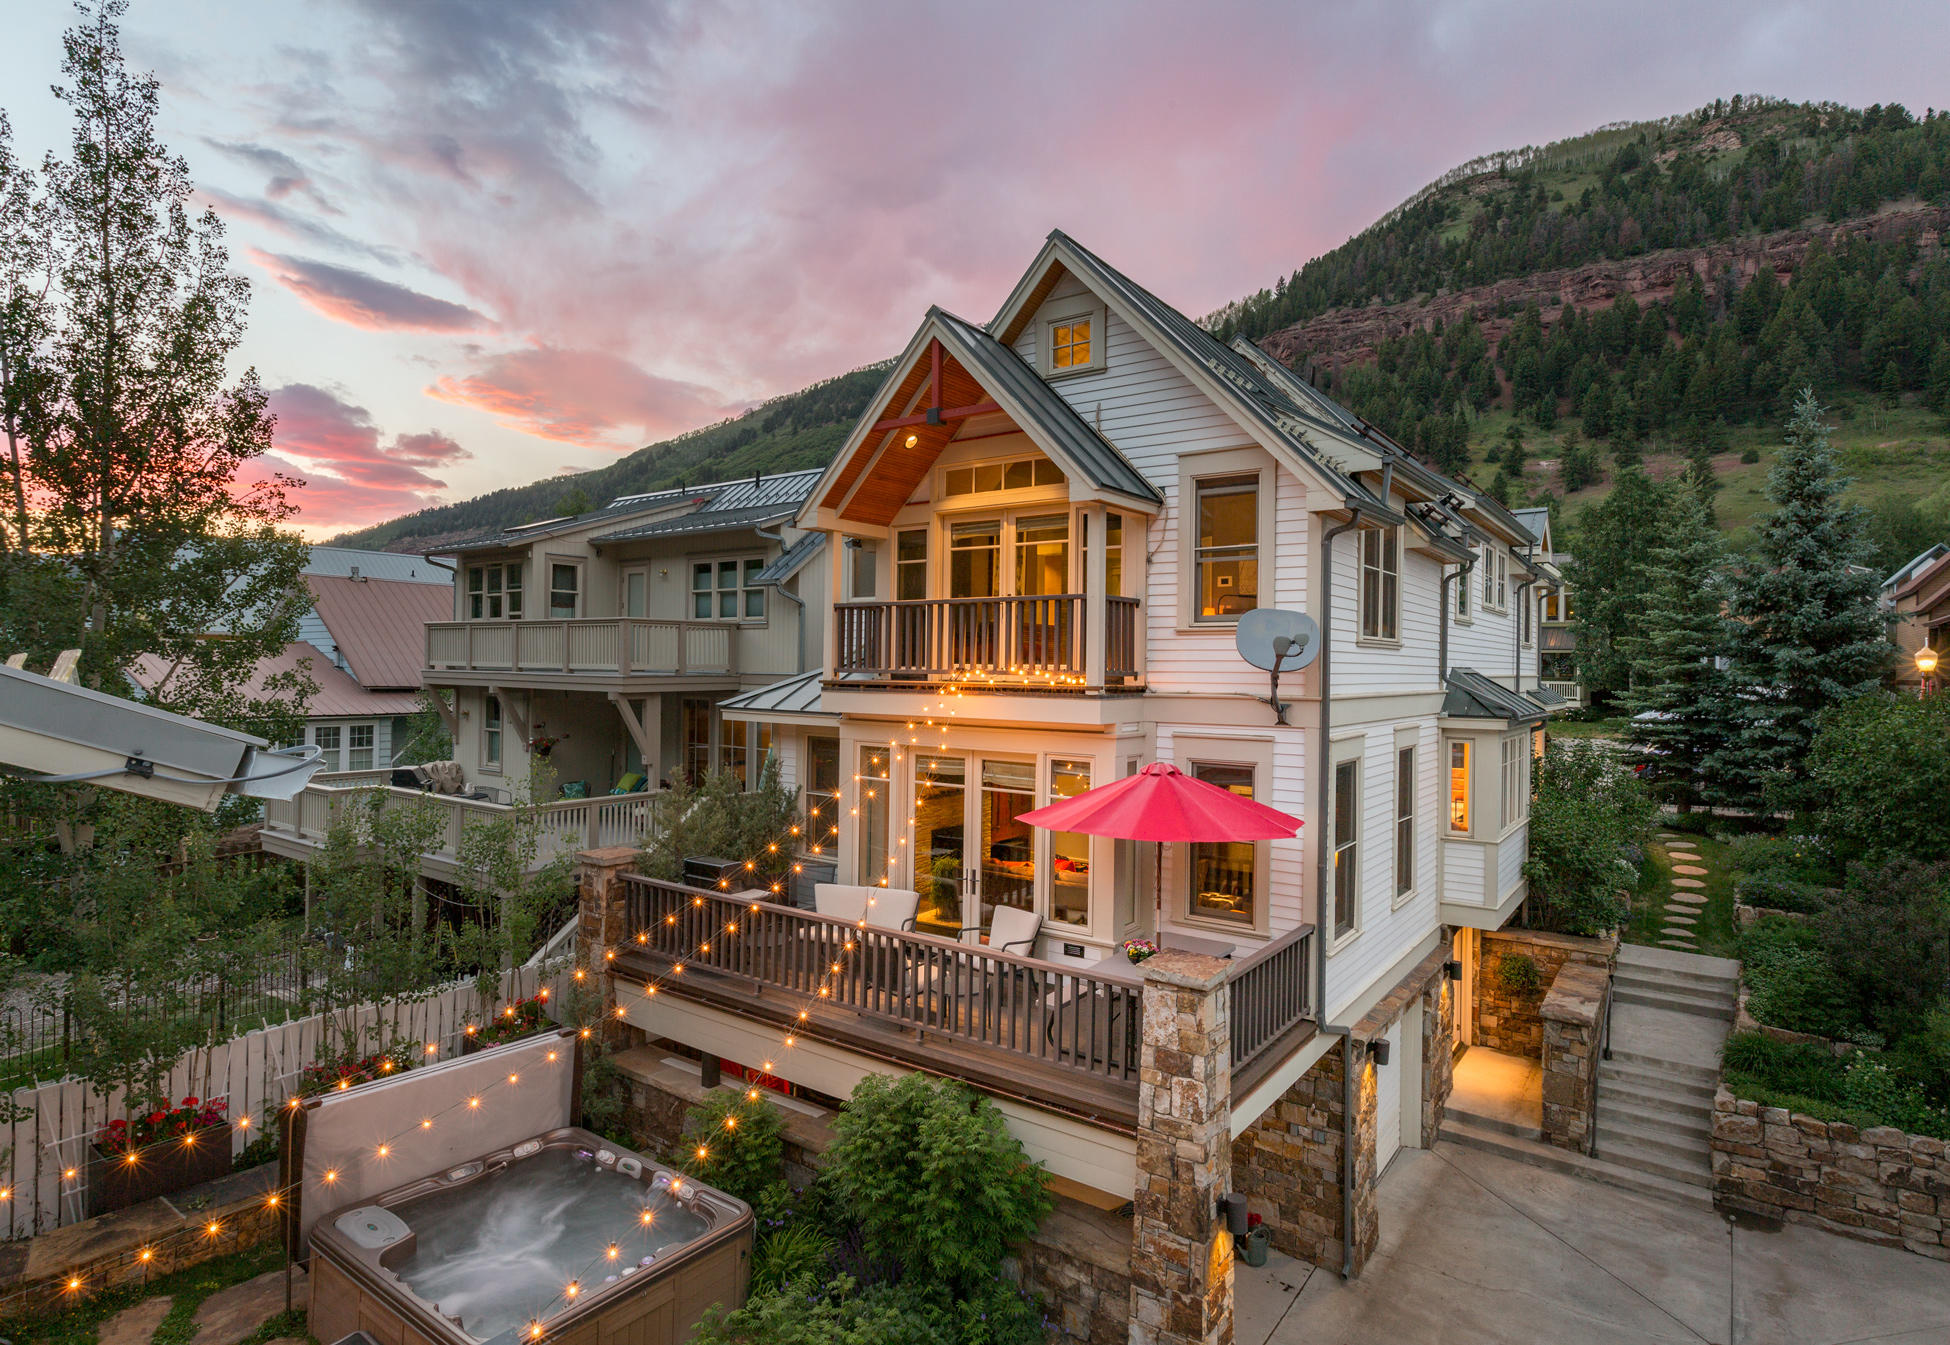 Telluride CO Real Estate Dream Homes and Mortgage Loans